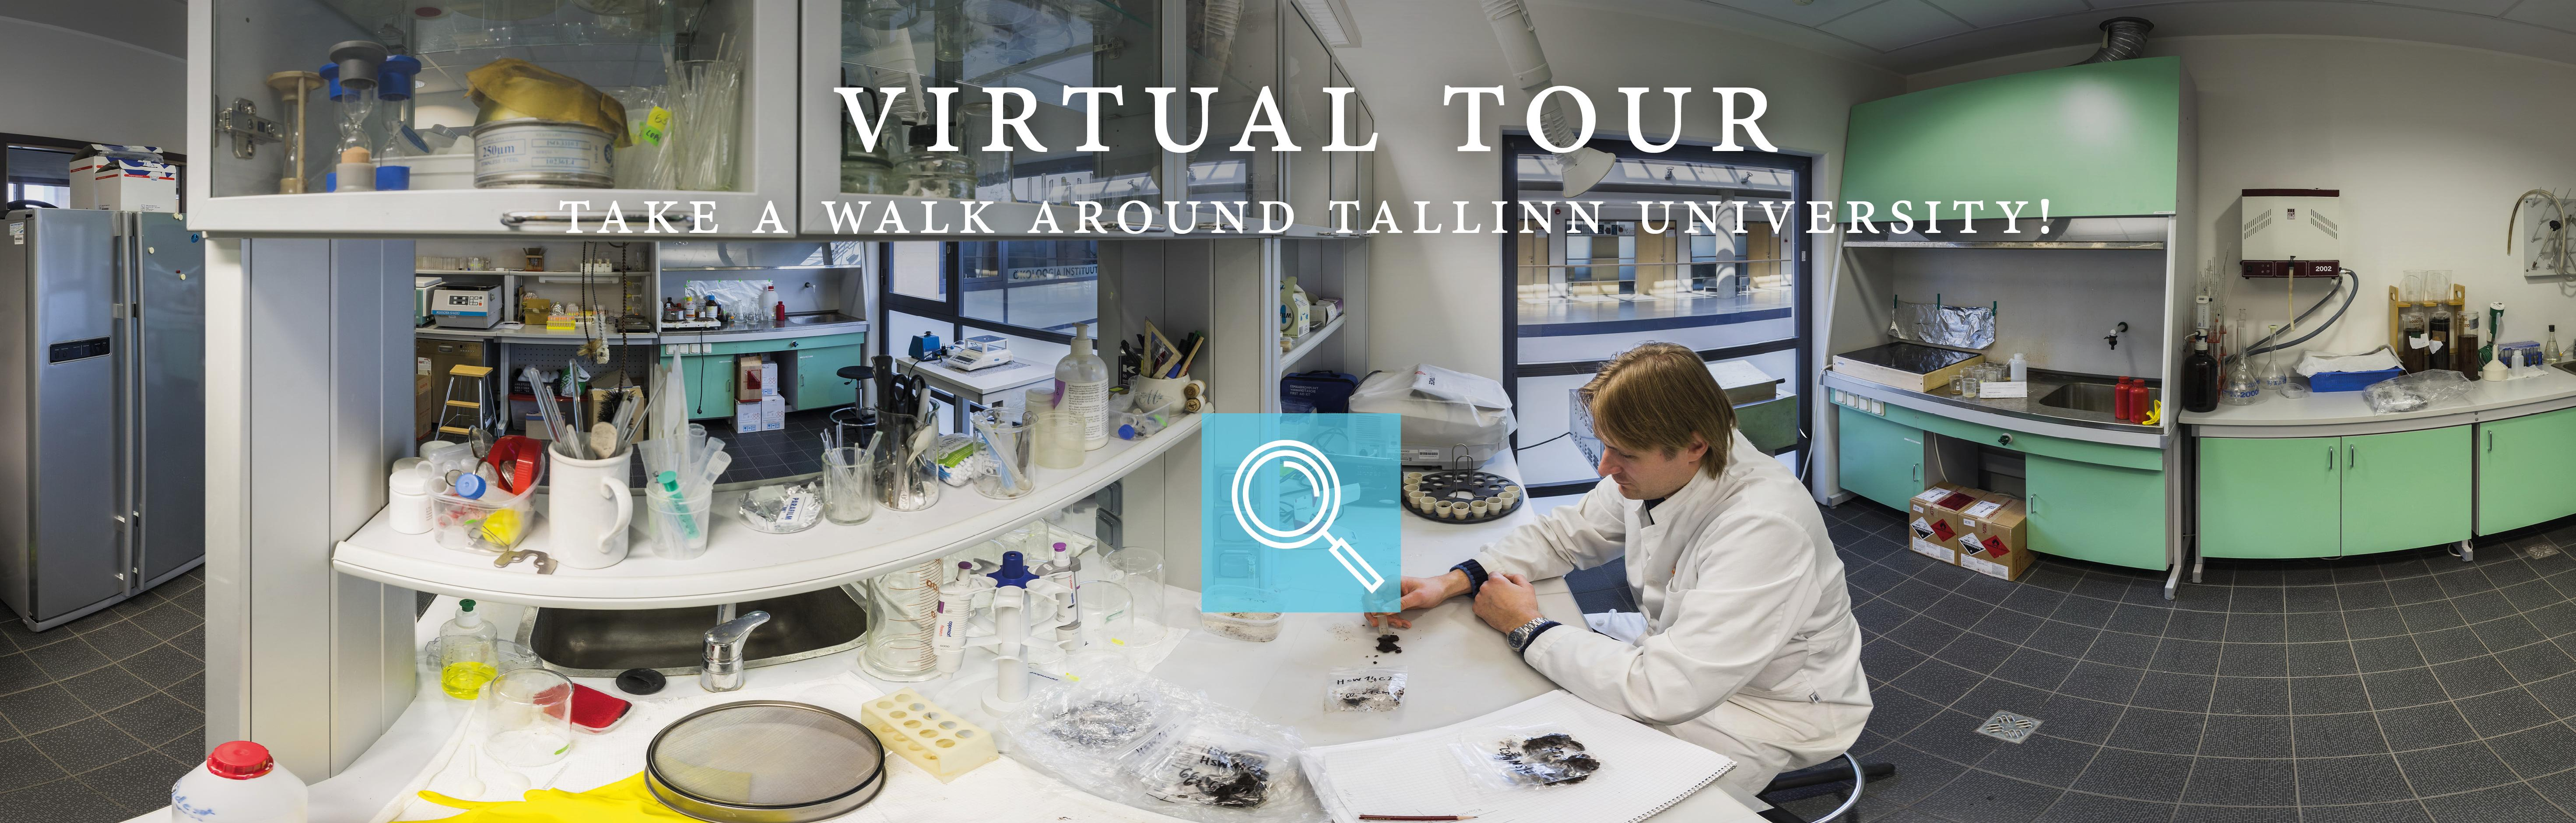 laboratory virtual tour